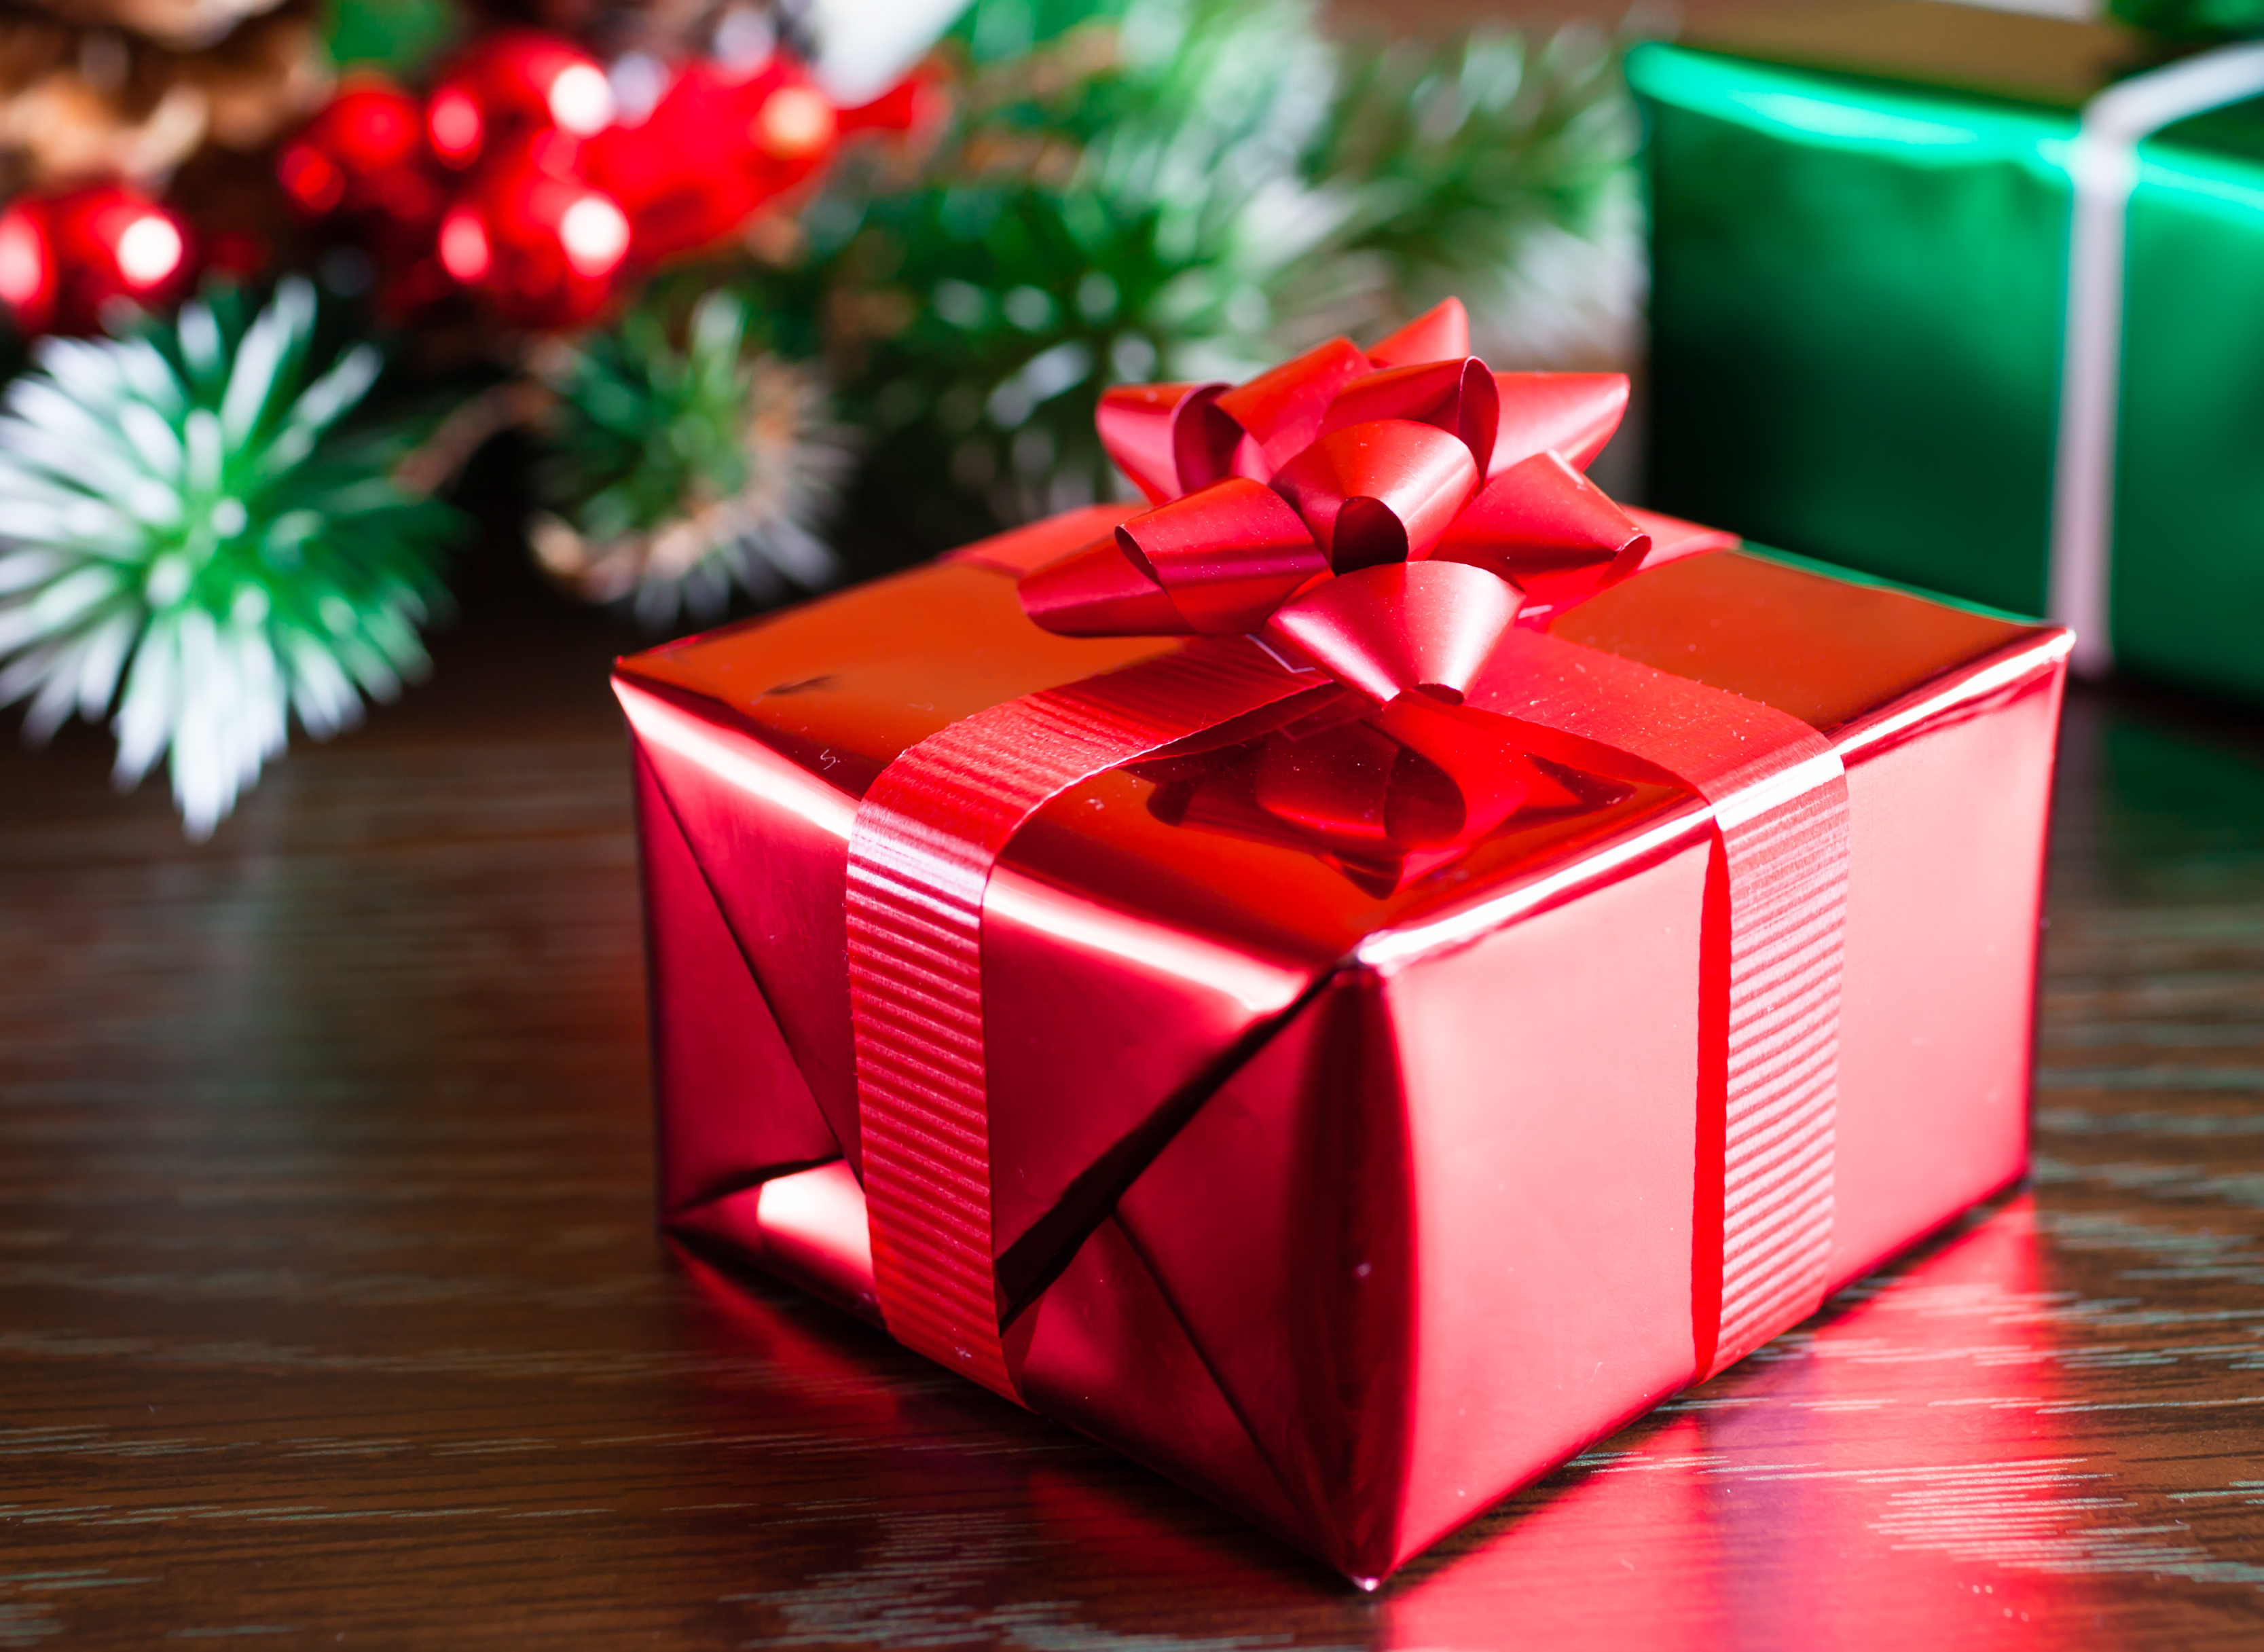 A gift neatly wrapped in shiny red paper with a bow.